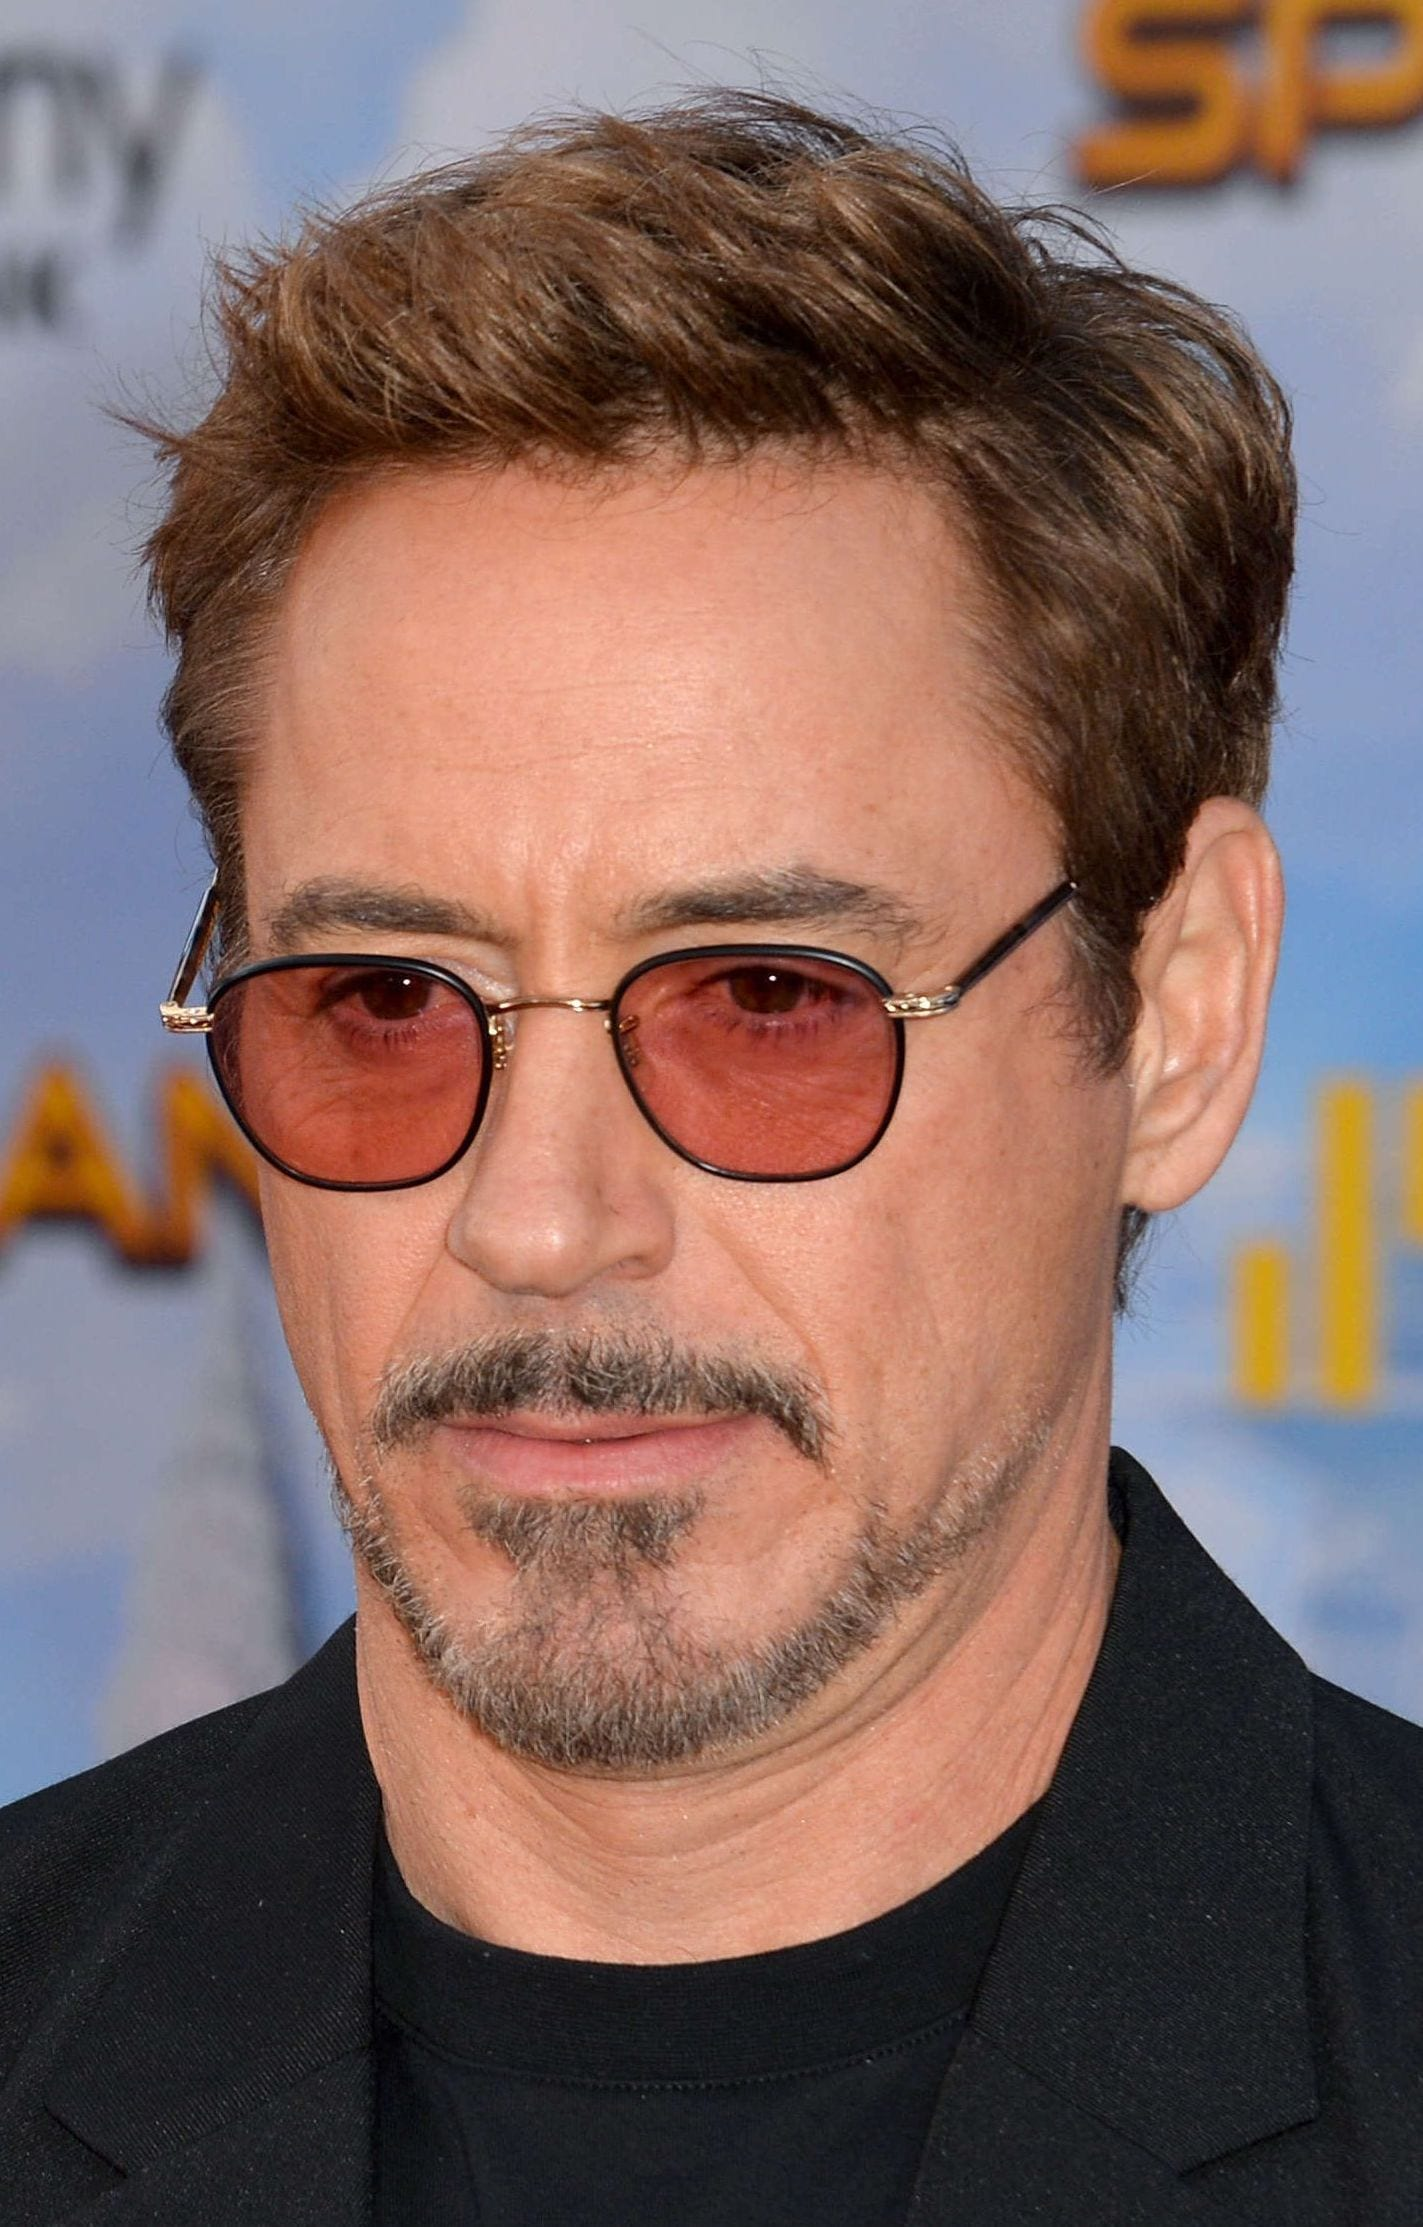 Robert Downey's Ivy League Haircut with Glasses